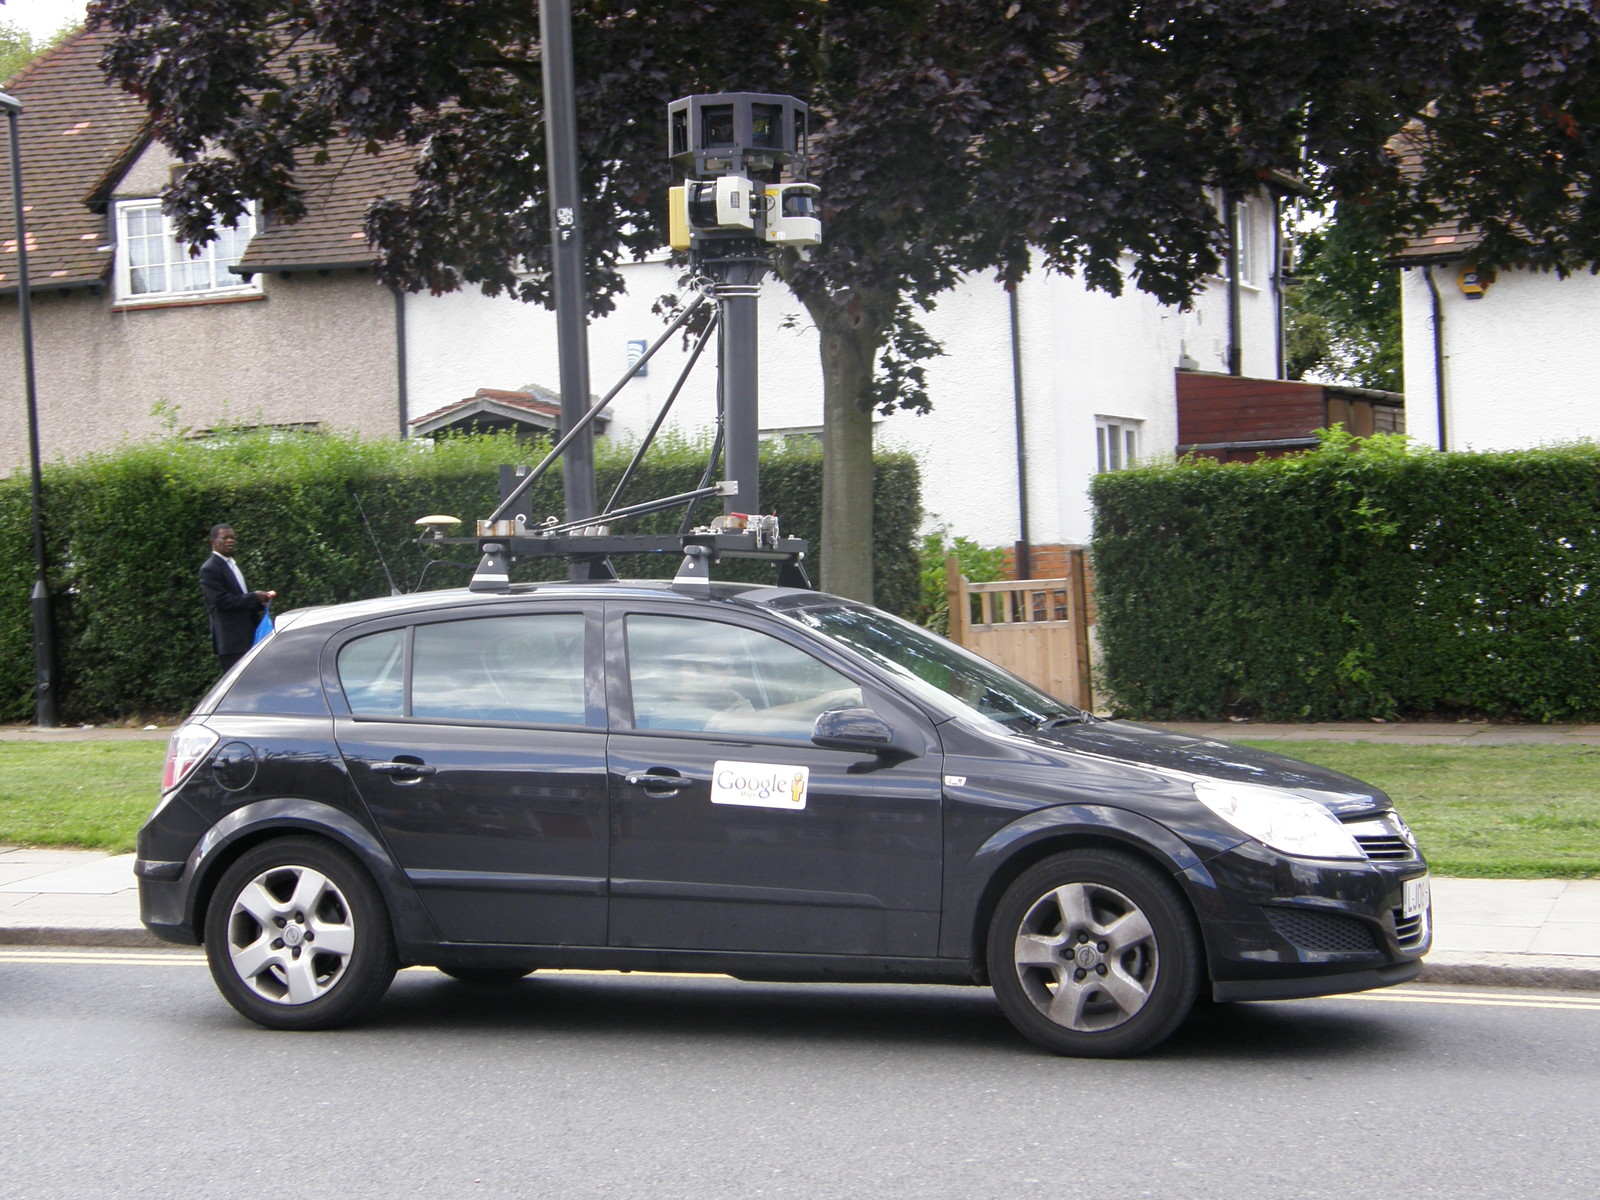 Google's Street View car